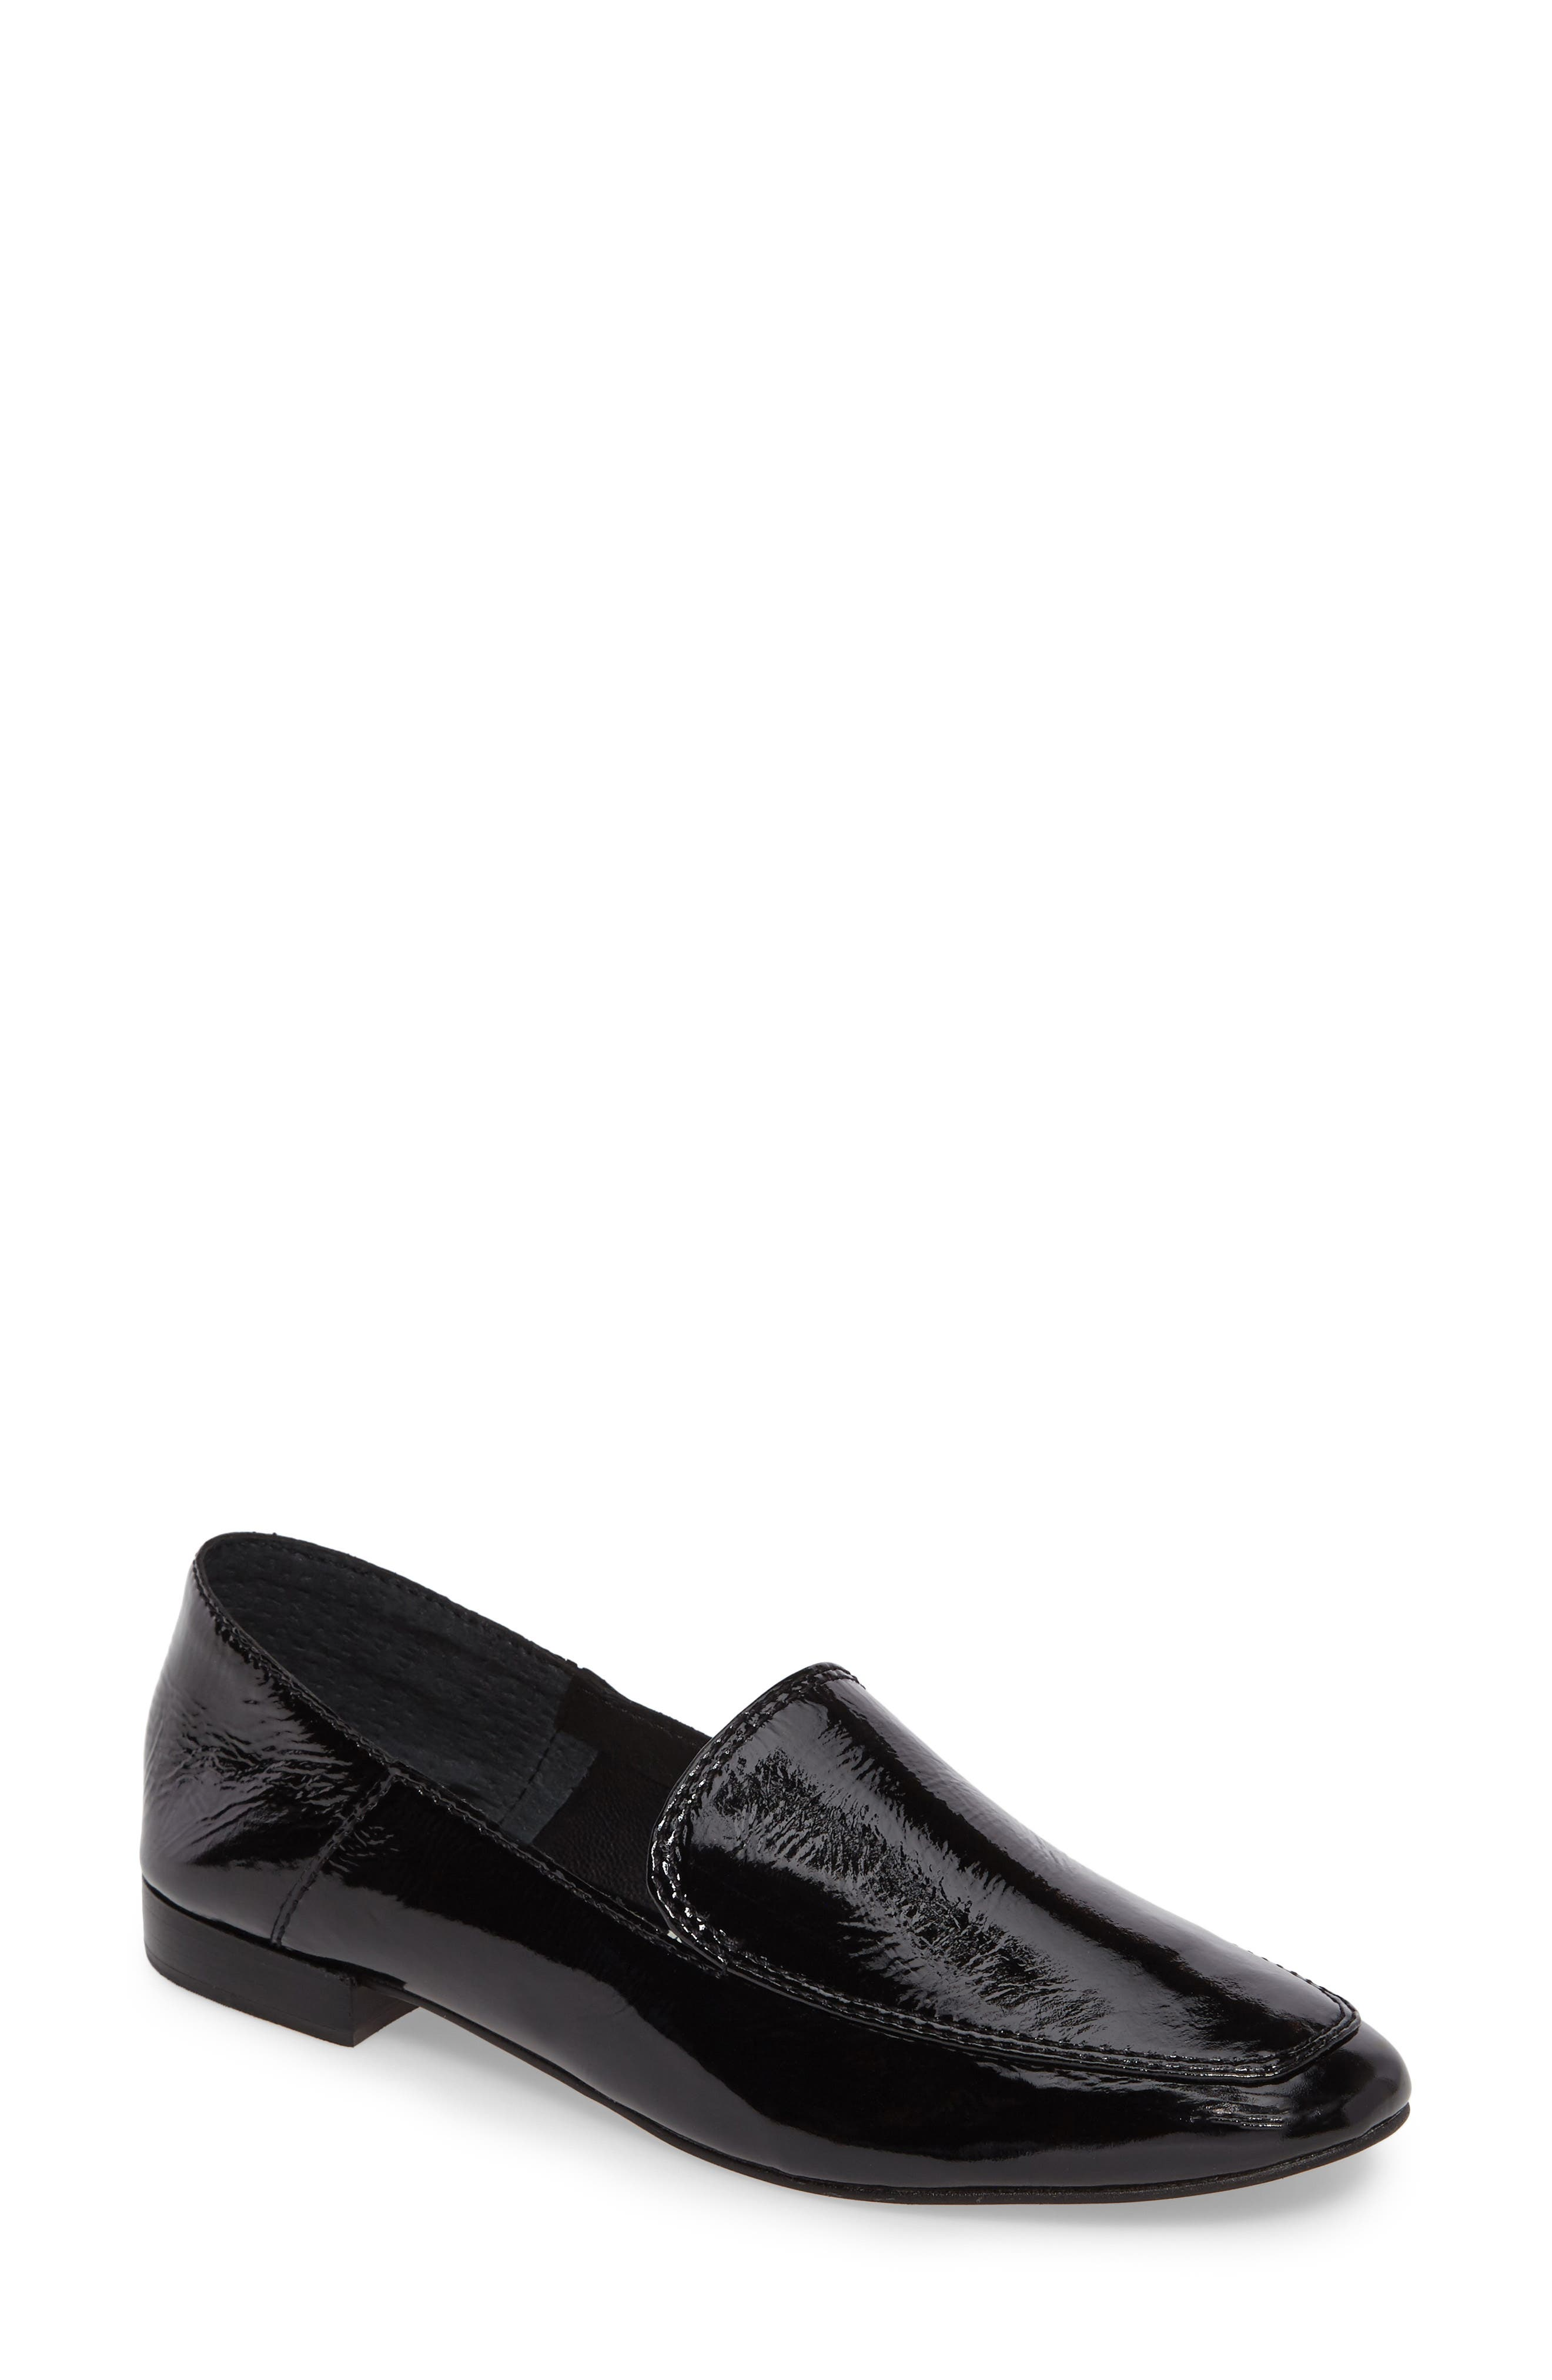 Camden Loafer,                         Main,                         color, Onyx Patent Leather